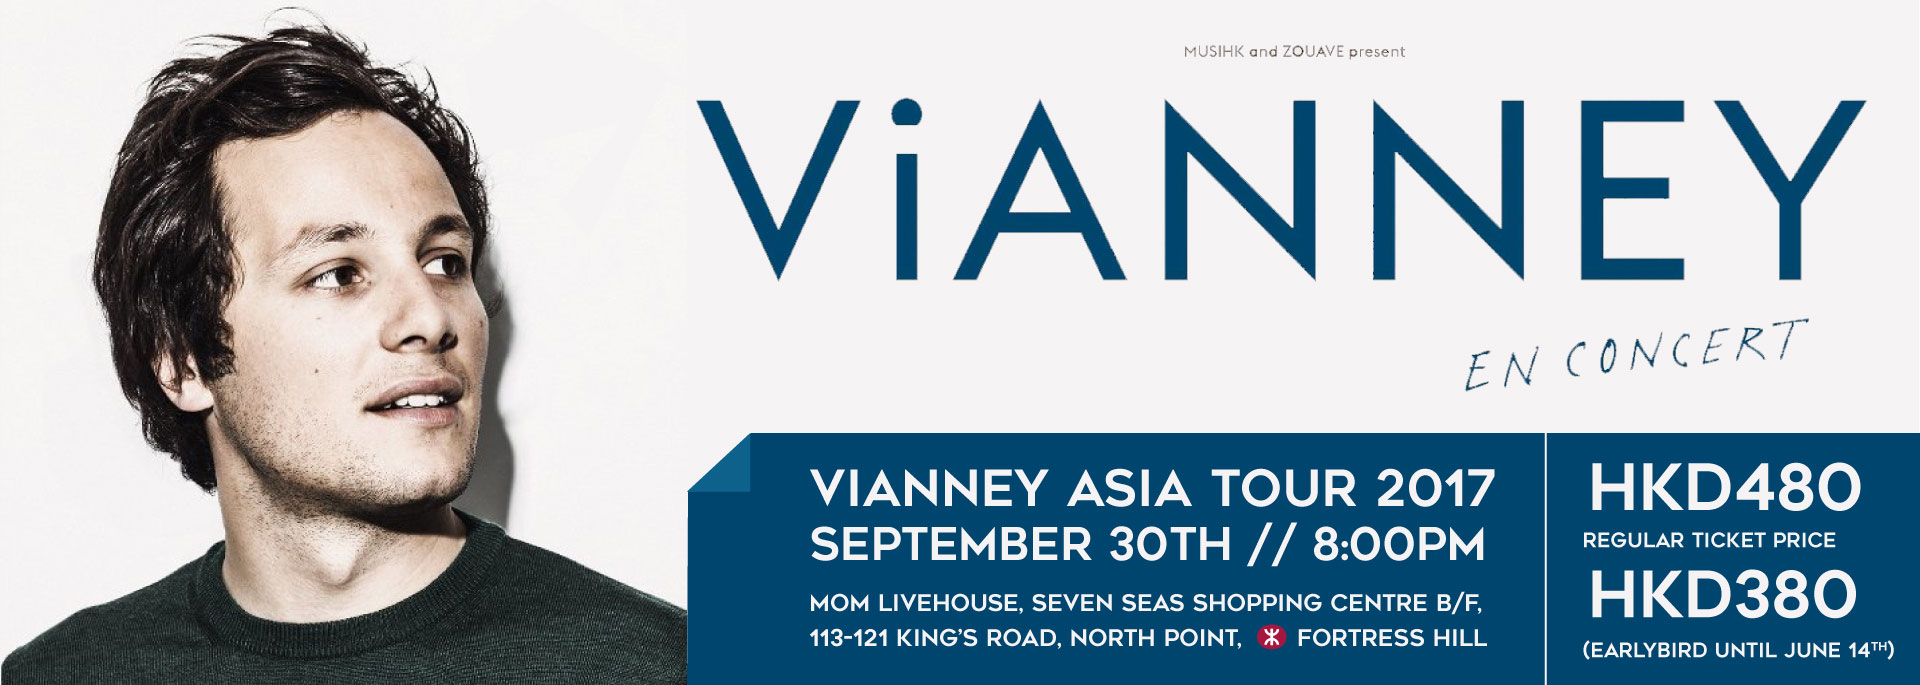 VIANNEY 'Asia Tour 2017' - Buy Tickets Hong Kong 2017